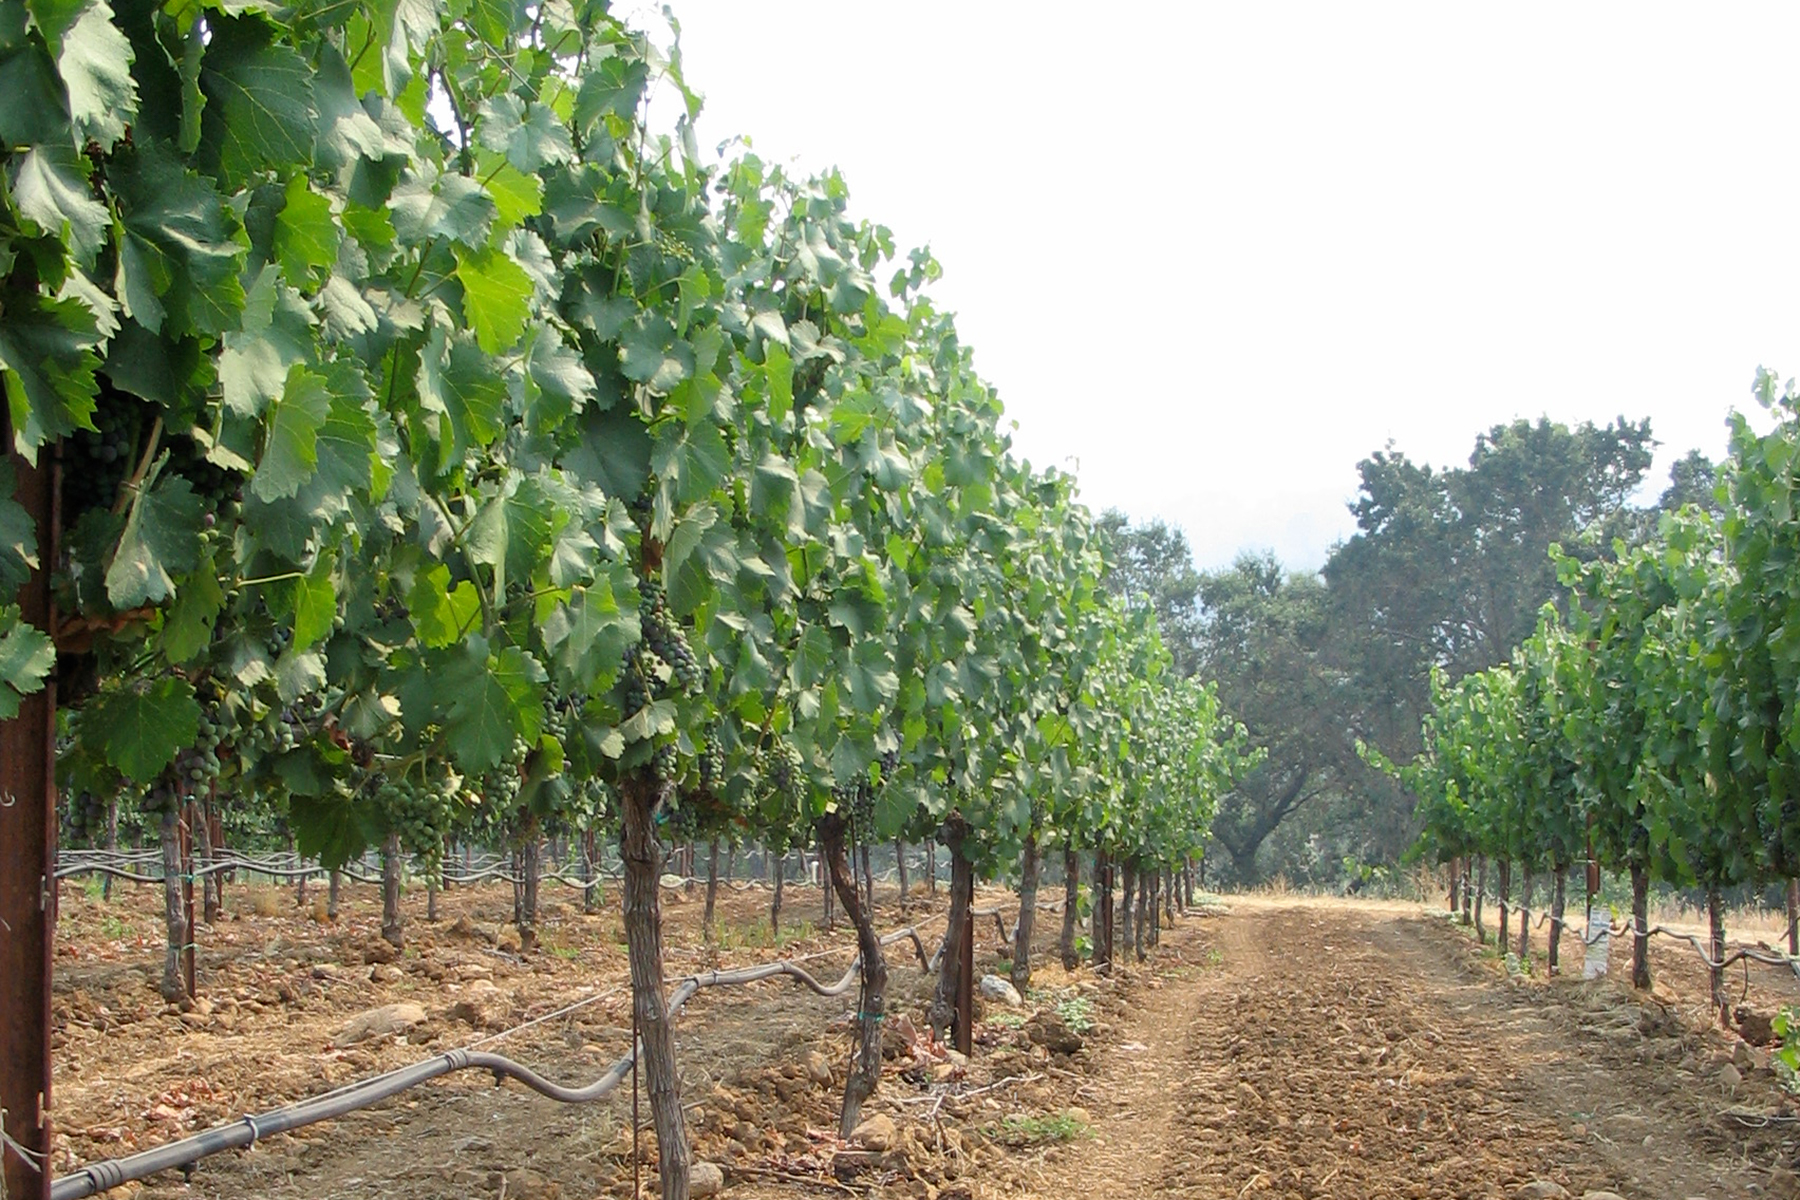 Juliana's Vineyard